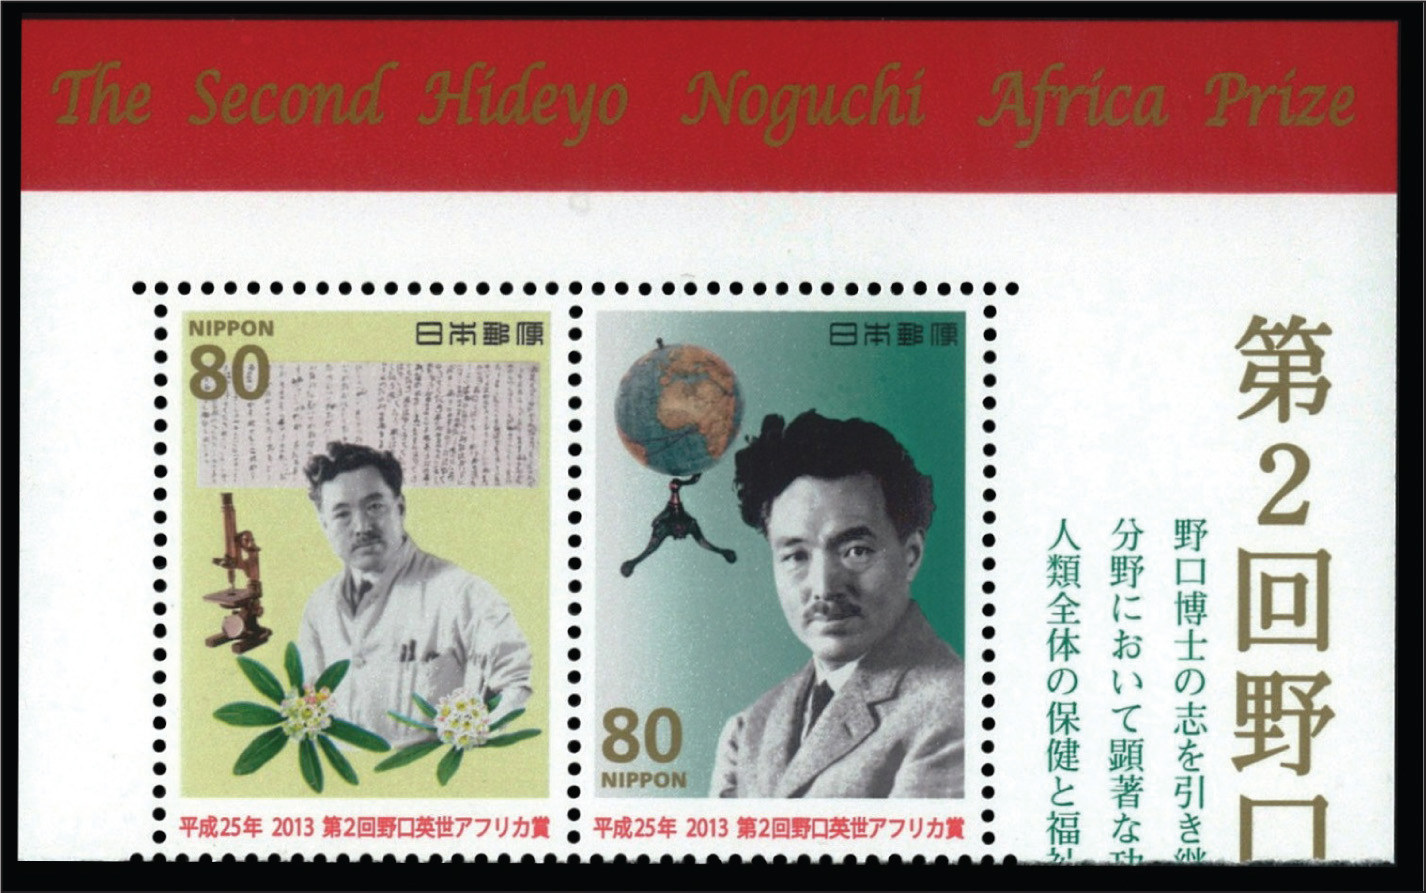 2013 Japanese stamps celebrate the Second Hideyo Noguchi Africa Prize. Noguchi was bacteriologist who discovered that Treponema pallidum is the etiologic agent of syphilis.